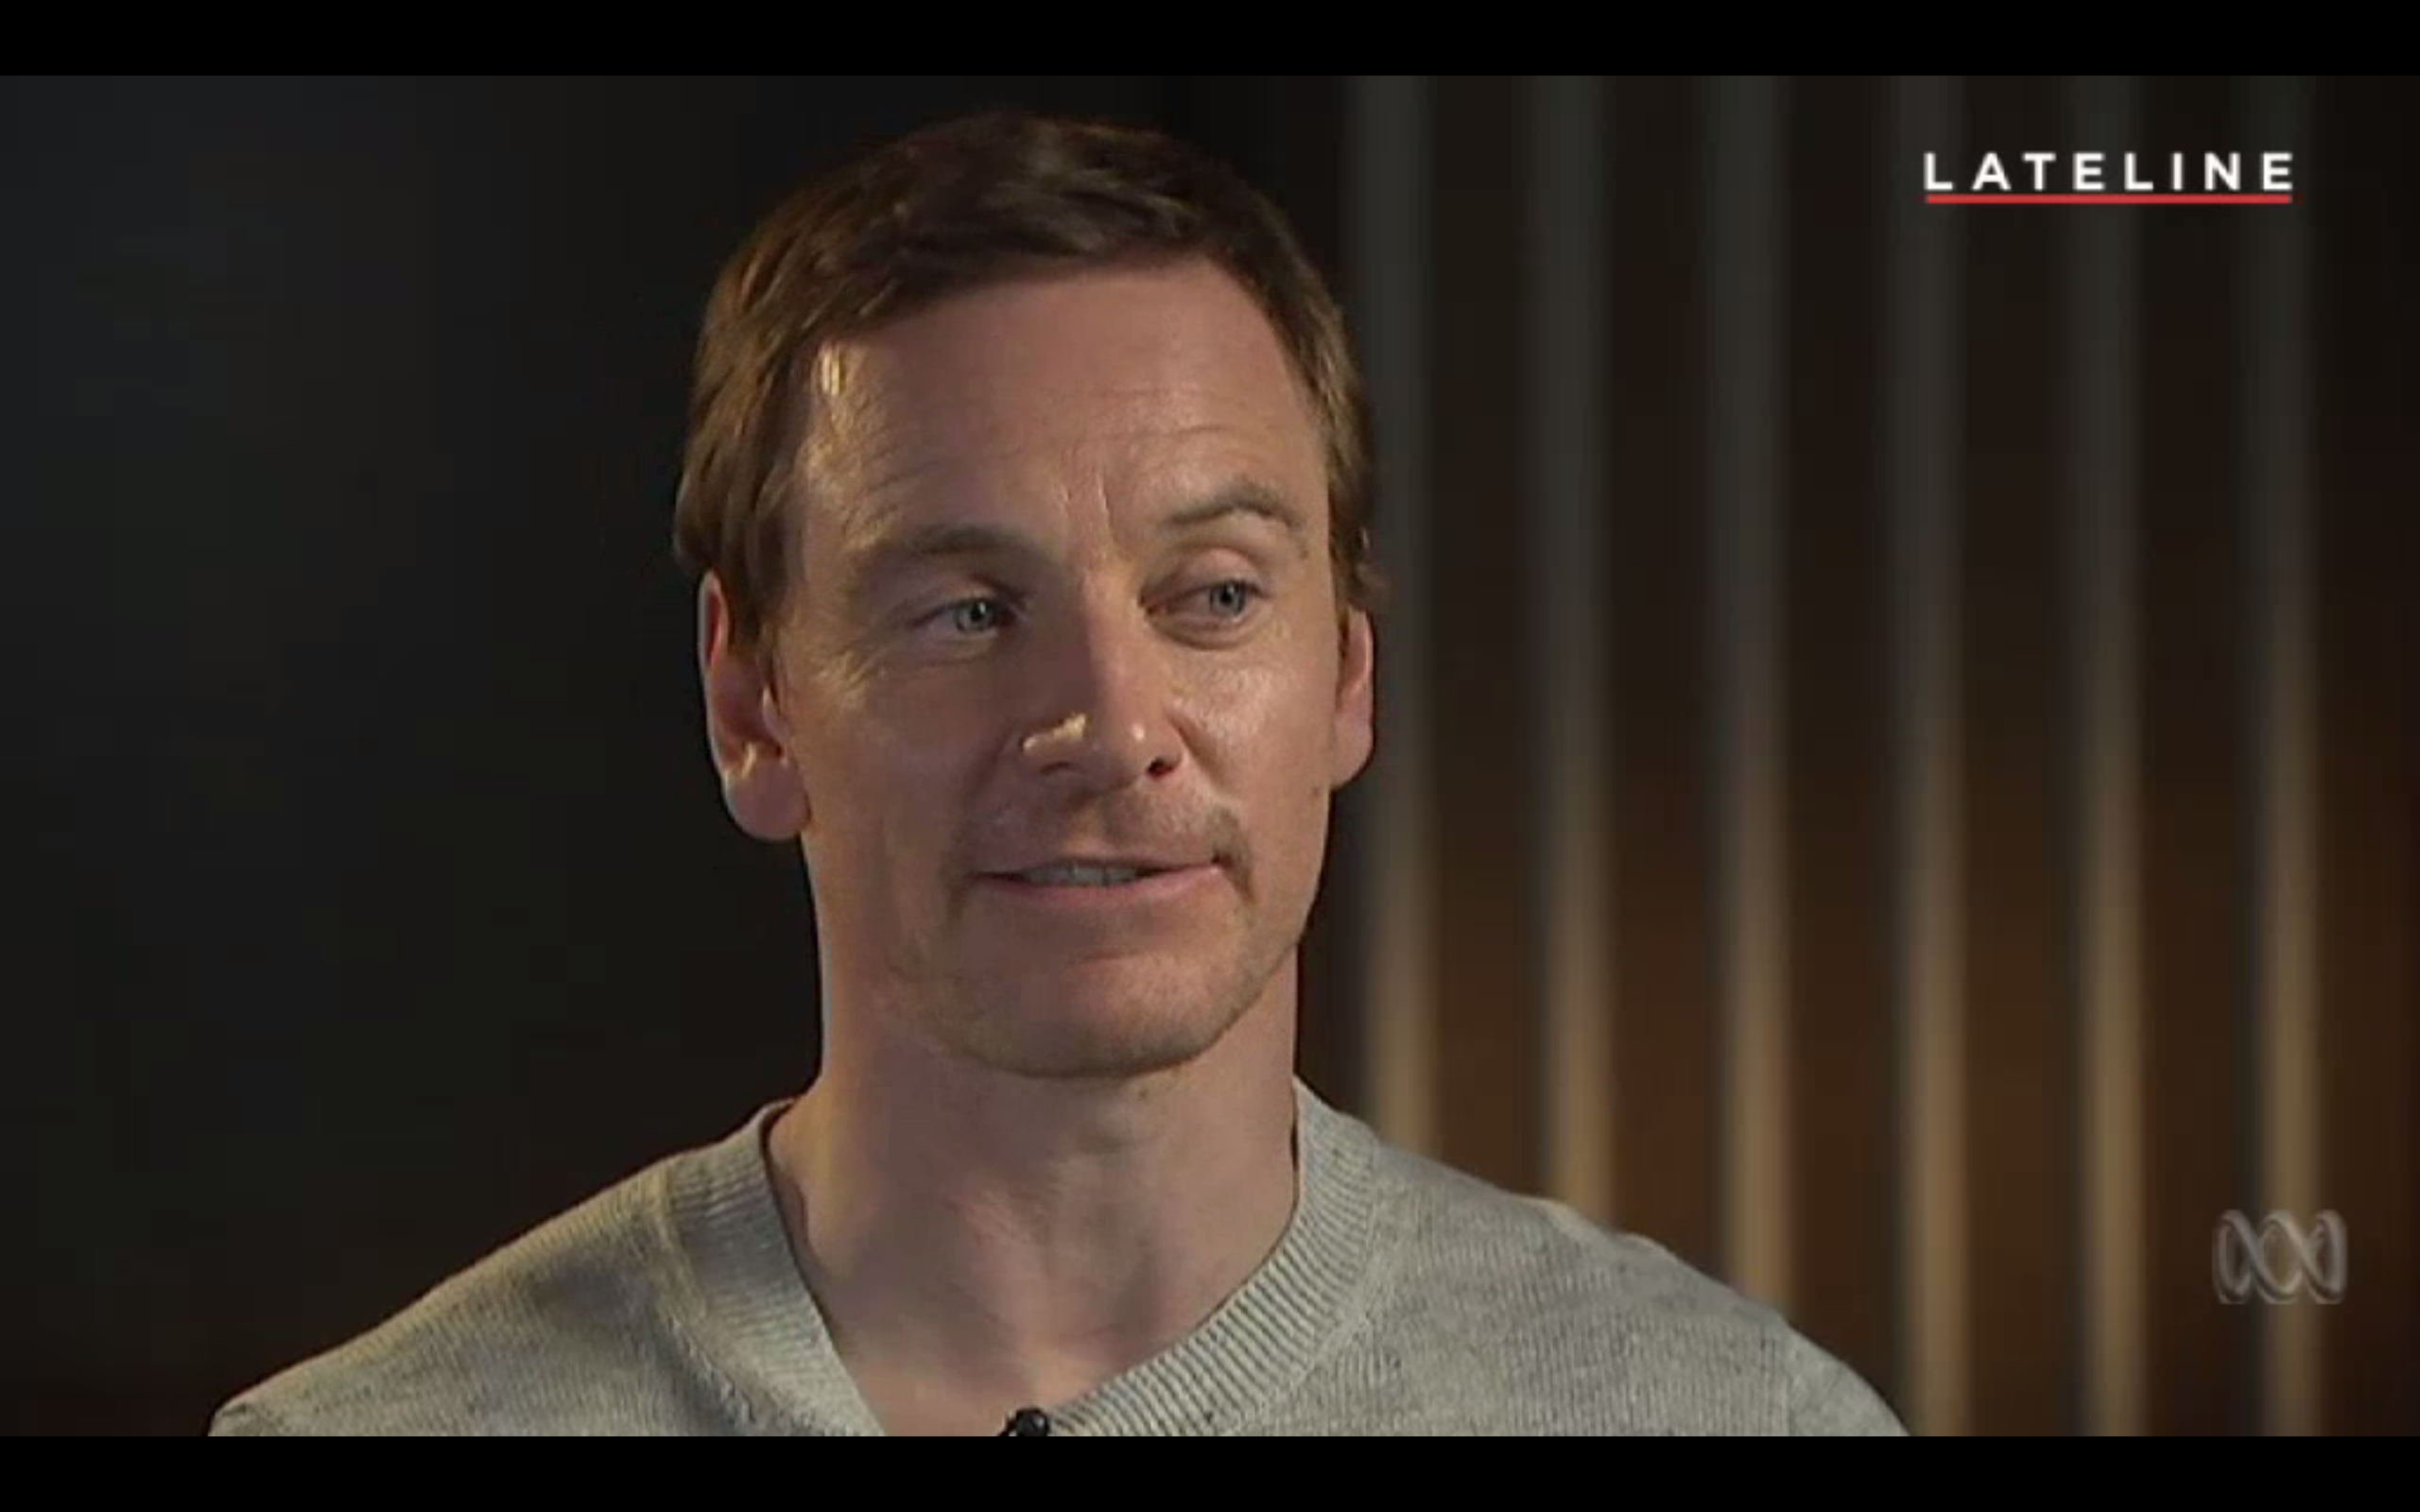 Michael Fassbender on the challenge of turning popular game Assassin's Creed into a film http://www.abc.net.au/news/2016-11-28/michael-fassbender-on-assassin's-creed/8063706?pfmredir=sm